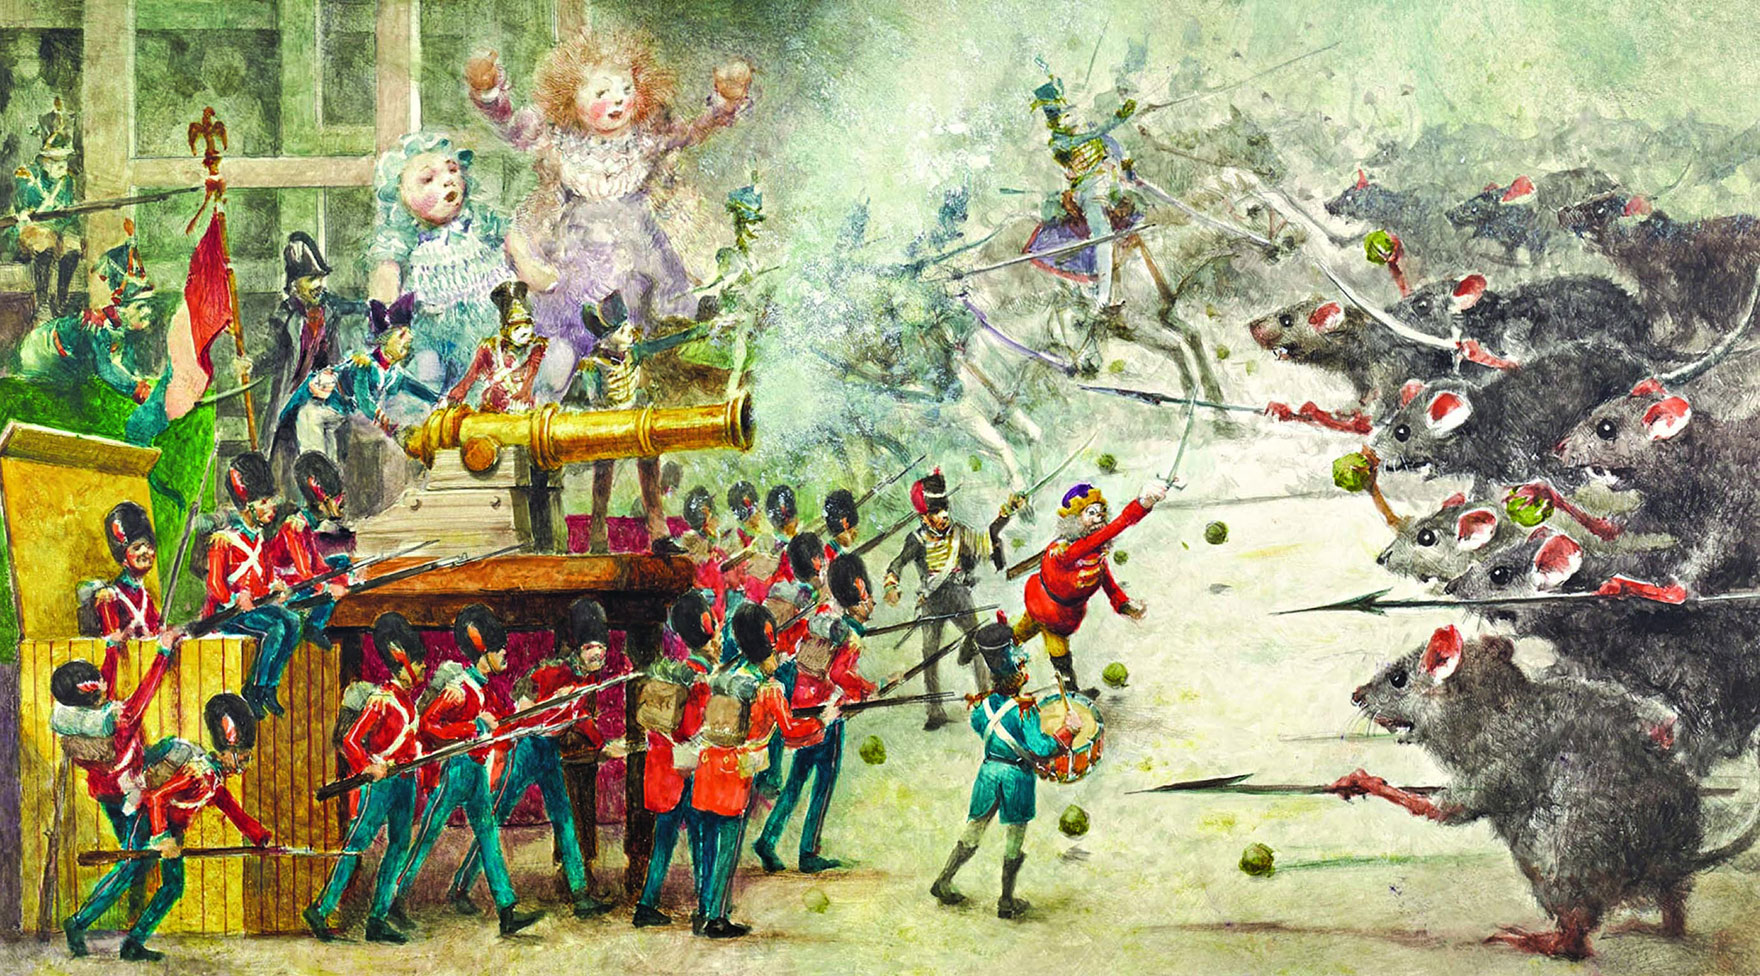 robert ingpen and wonderland the nutcracker the 1816 german story that inspired tchaikovsky s famous ballet is rarely translated in its original form as we have done in this